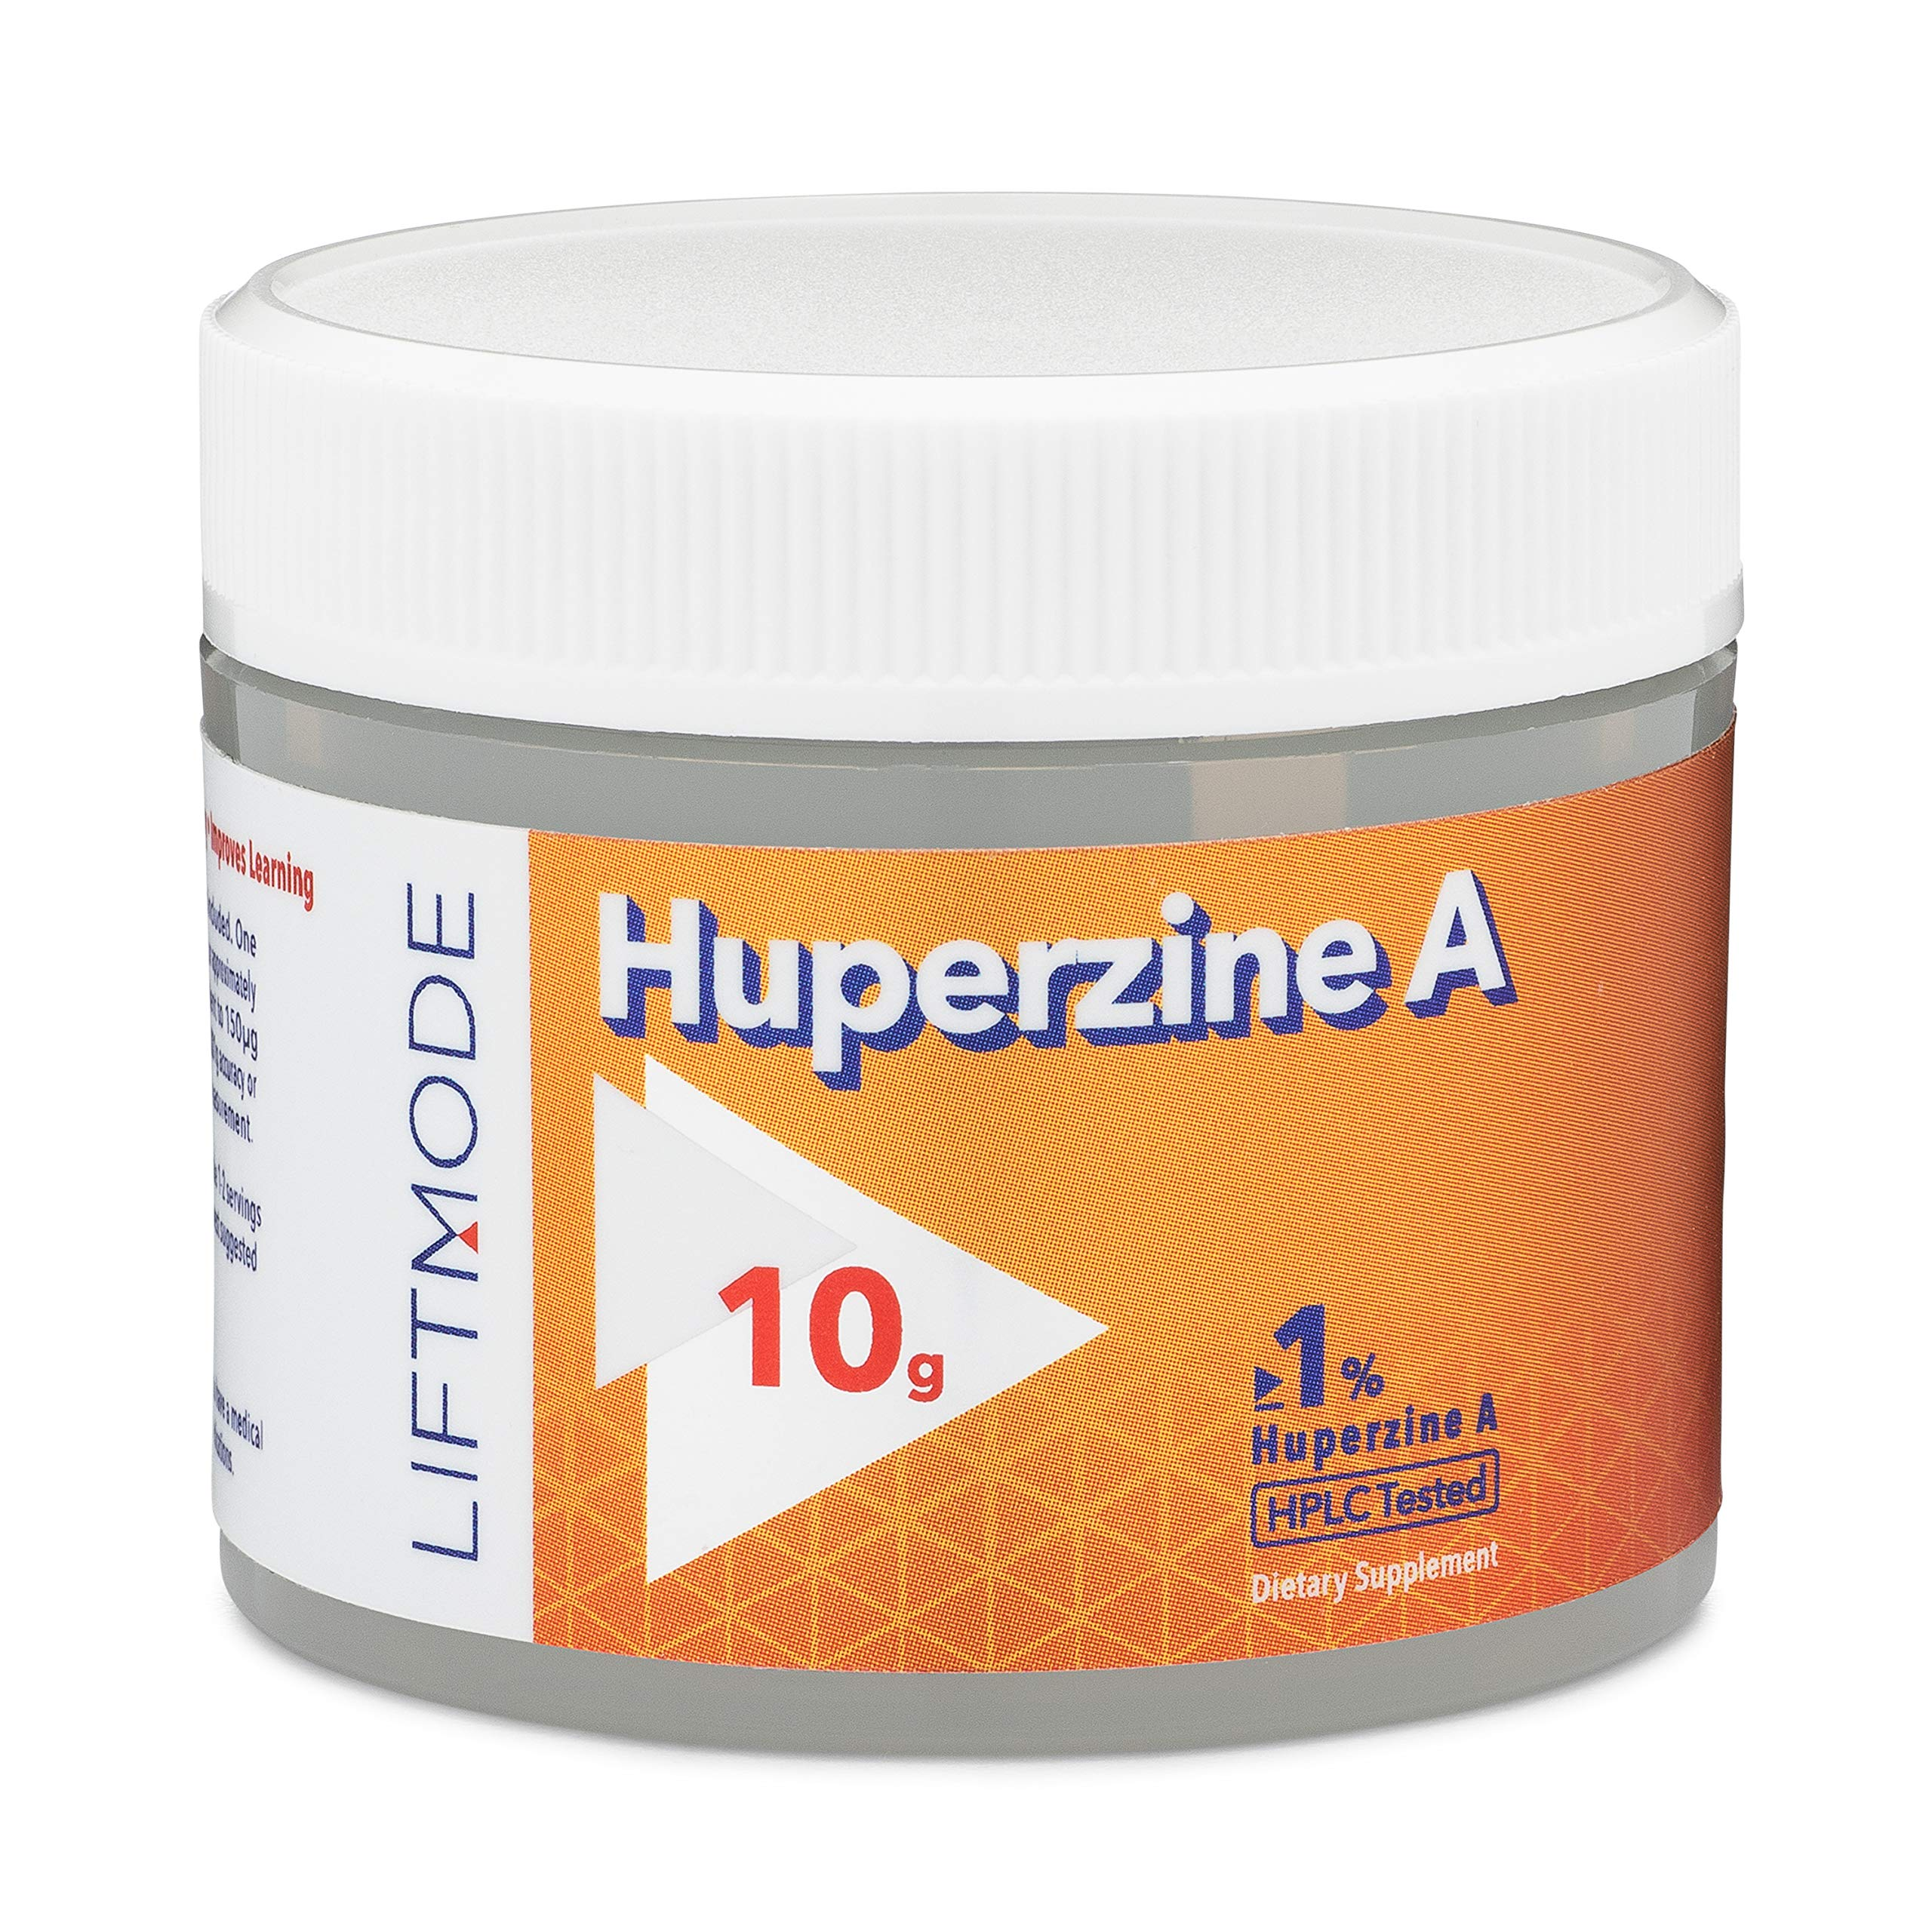 LiftMode Huperzine A Powder Supplement - Supports Focus & Cognition, Enhances Memory & Learning Ability, Huperzia Serrata Extract | Vegetarian, Vegan, Non-GMO, Gluten Free - 10 Grams (500 Servings)